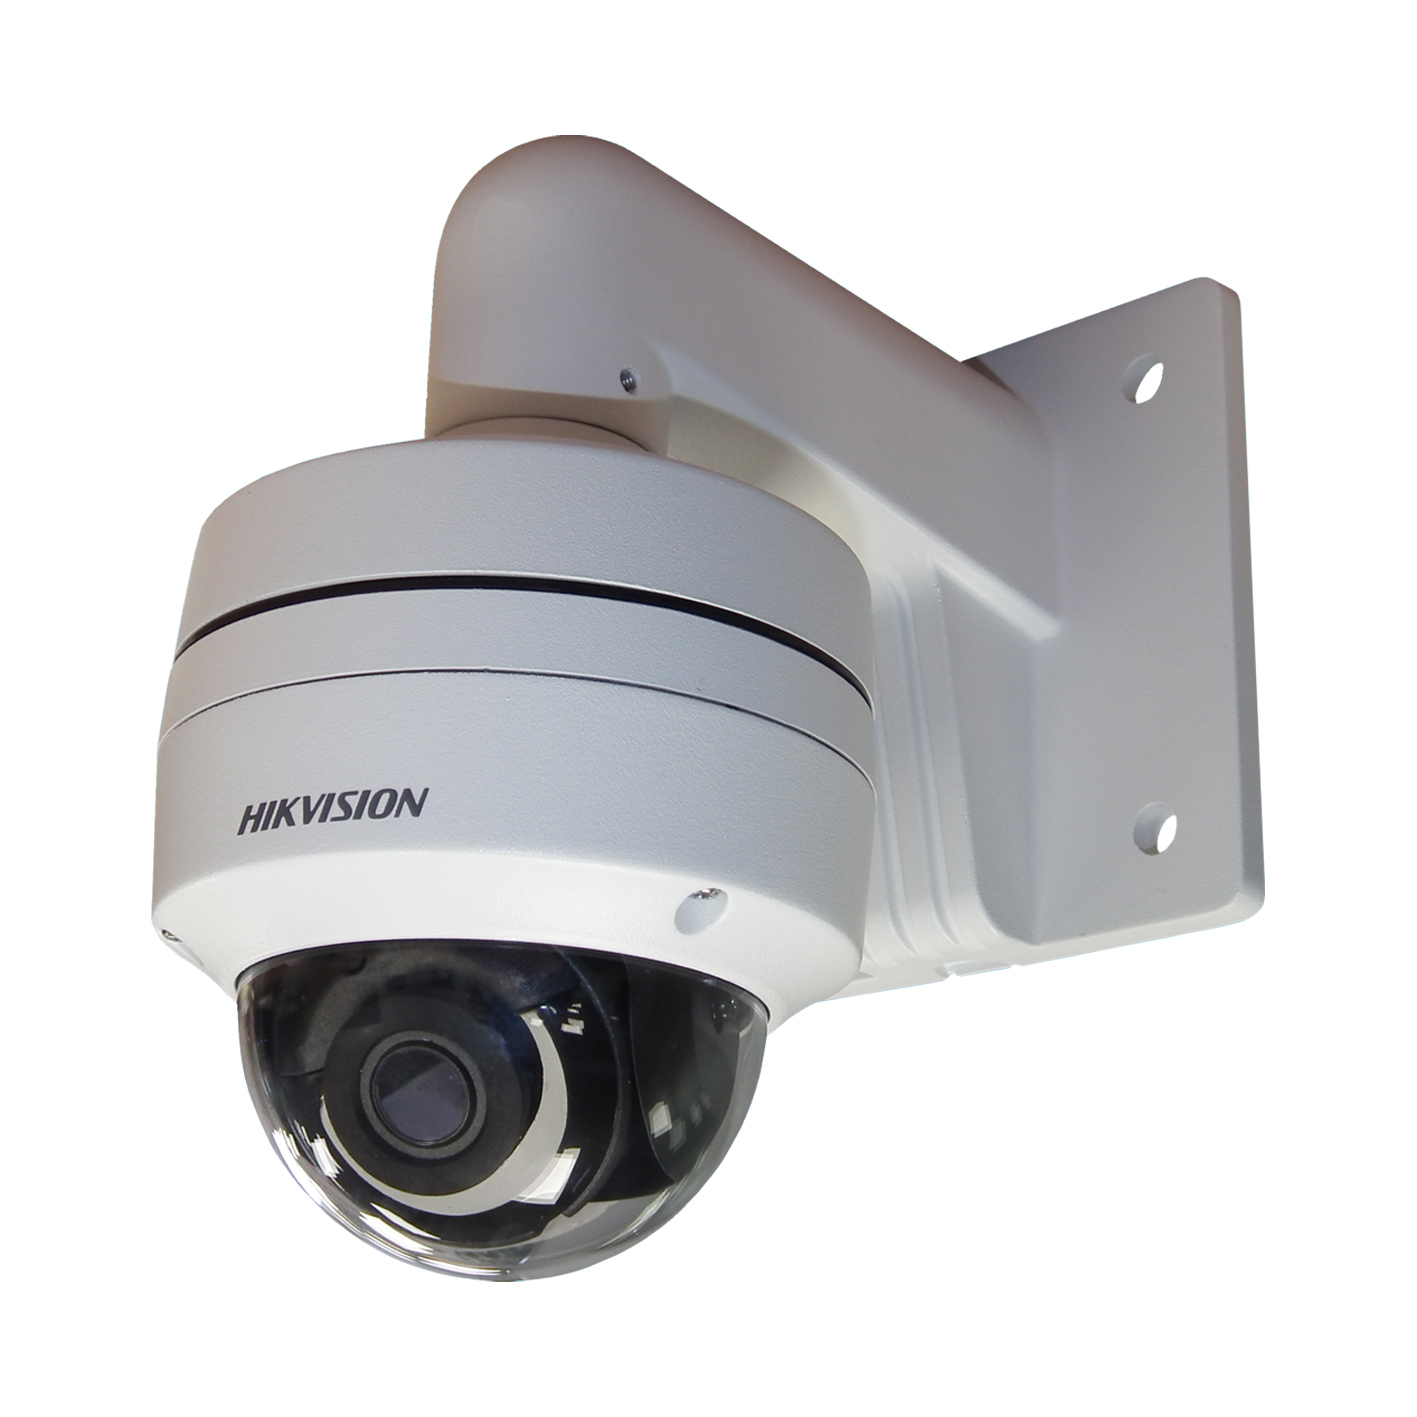 Hikvision 5mp 30 Meter Ir Fixed Lens Cctv Dome Camera With